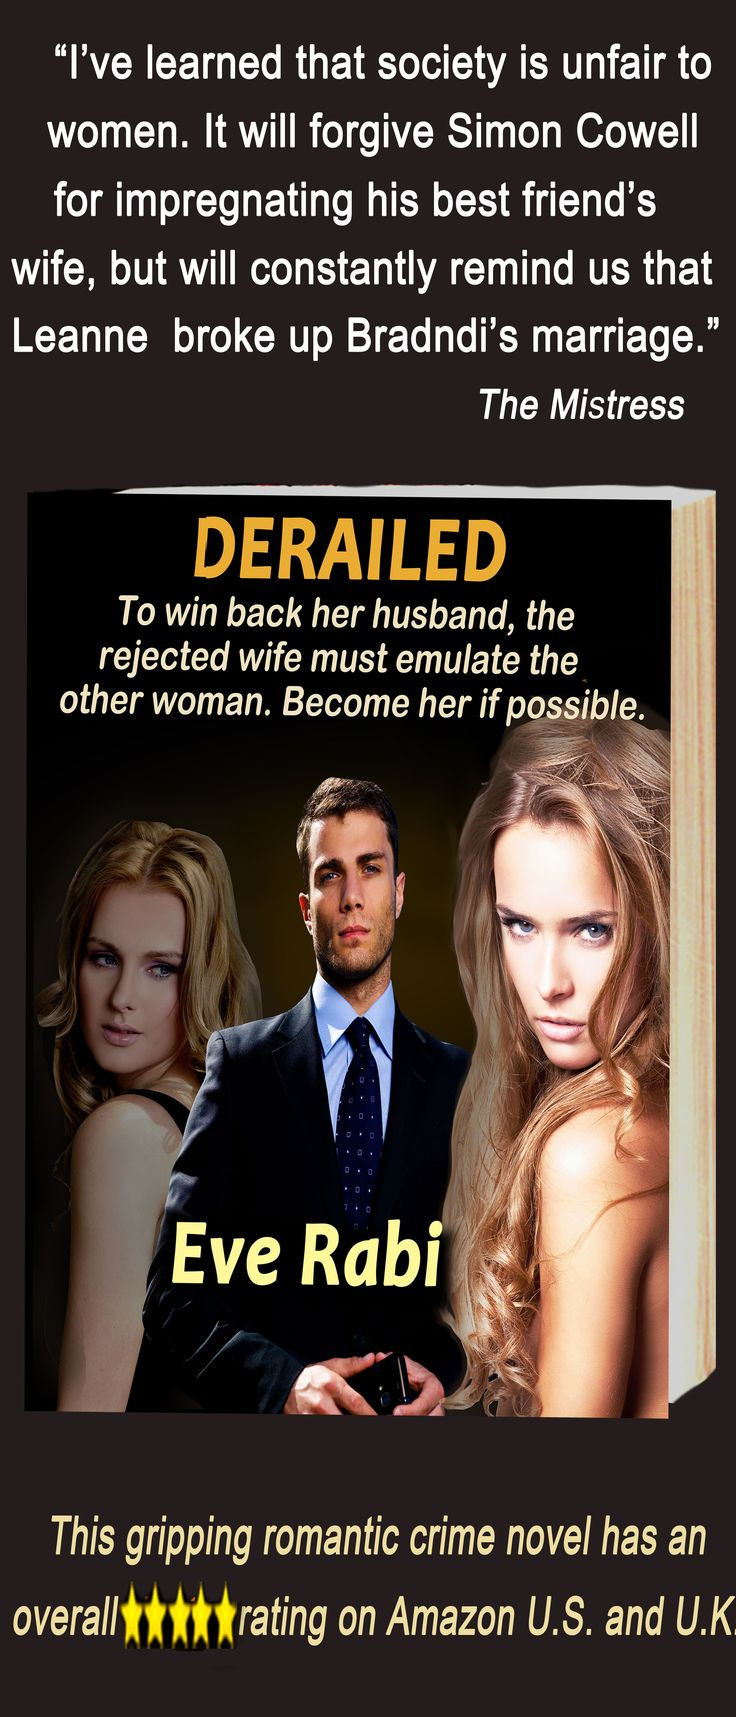 """#RomanticCrime #RomanticSuspense #CrimeFiction #Books #EveRabi Author #FollowBack ........ """"Bored with regular romance? Try this author's books. You won't be sorry, trust me. They are like nothing you have ever read."""" Amazon reviewer."""